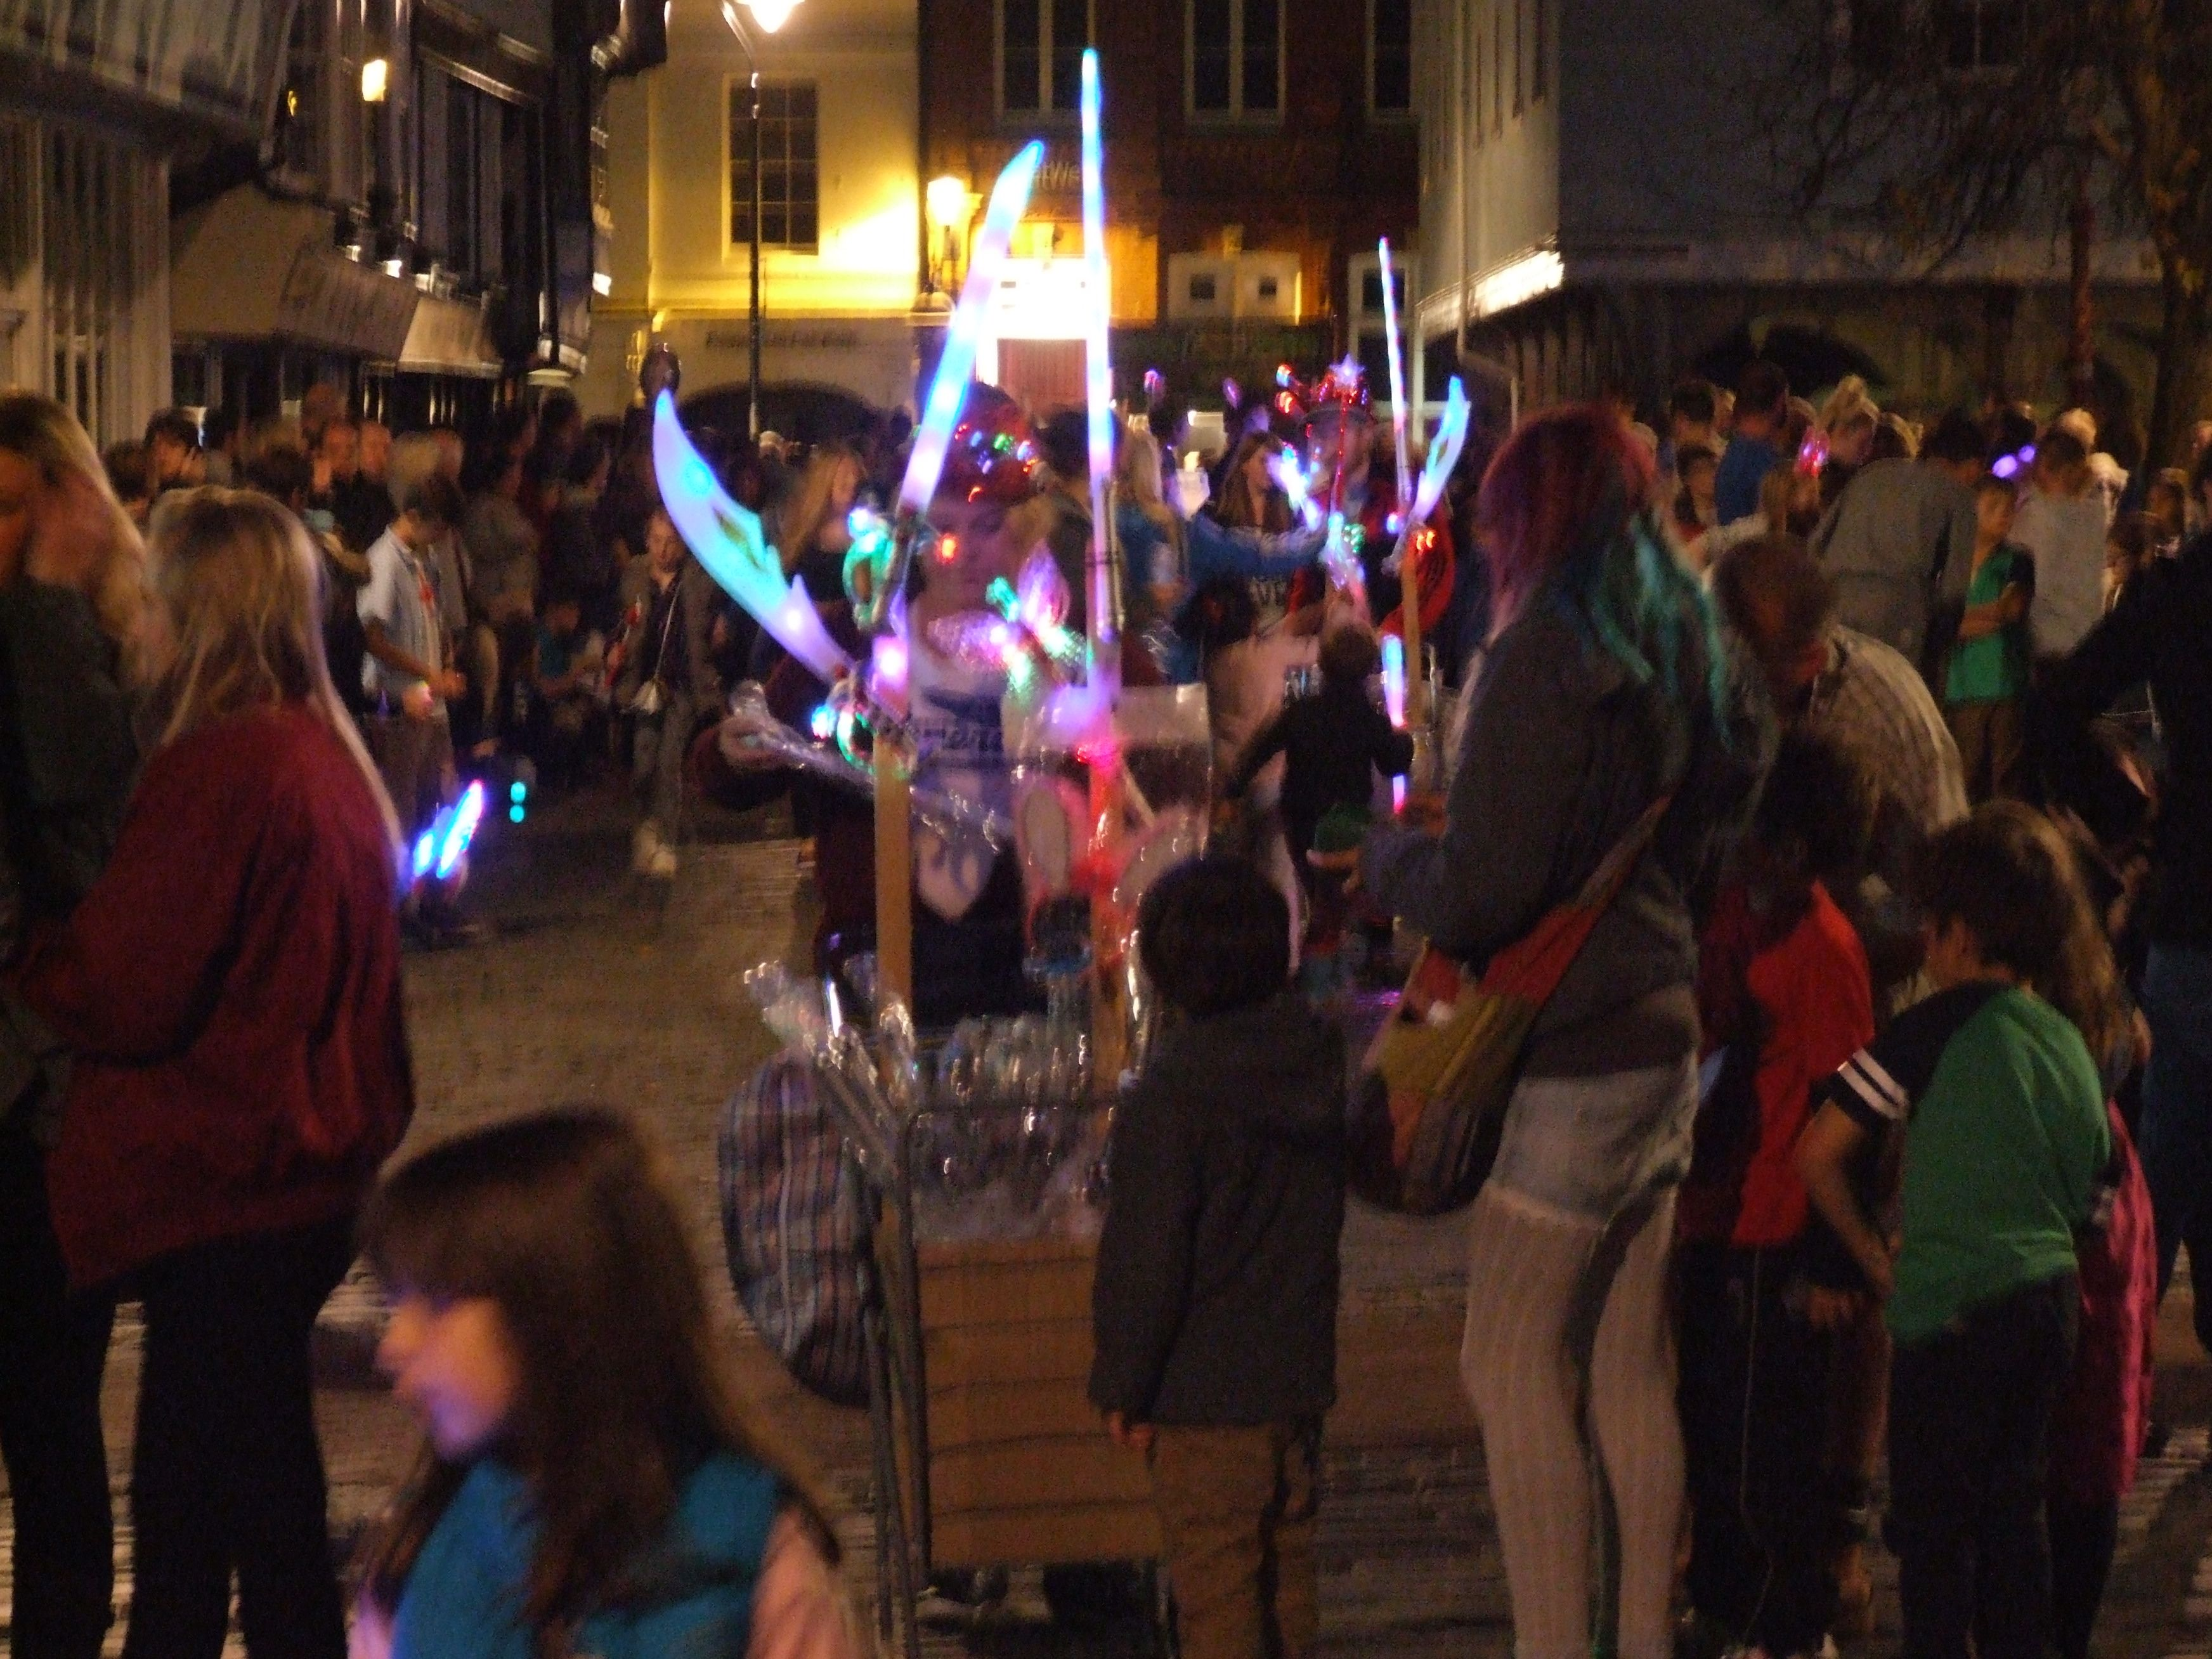 carnival night Faversham 2014